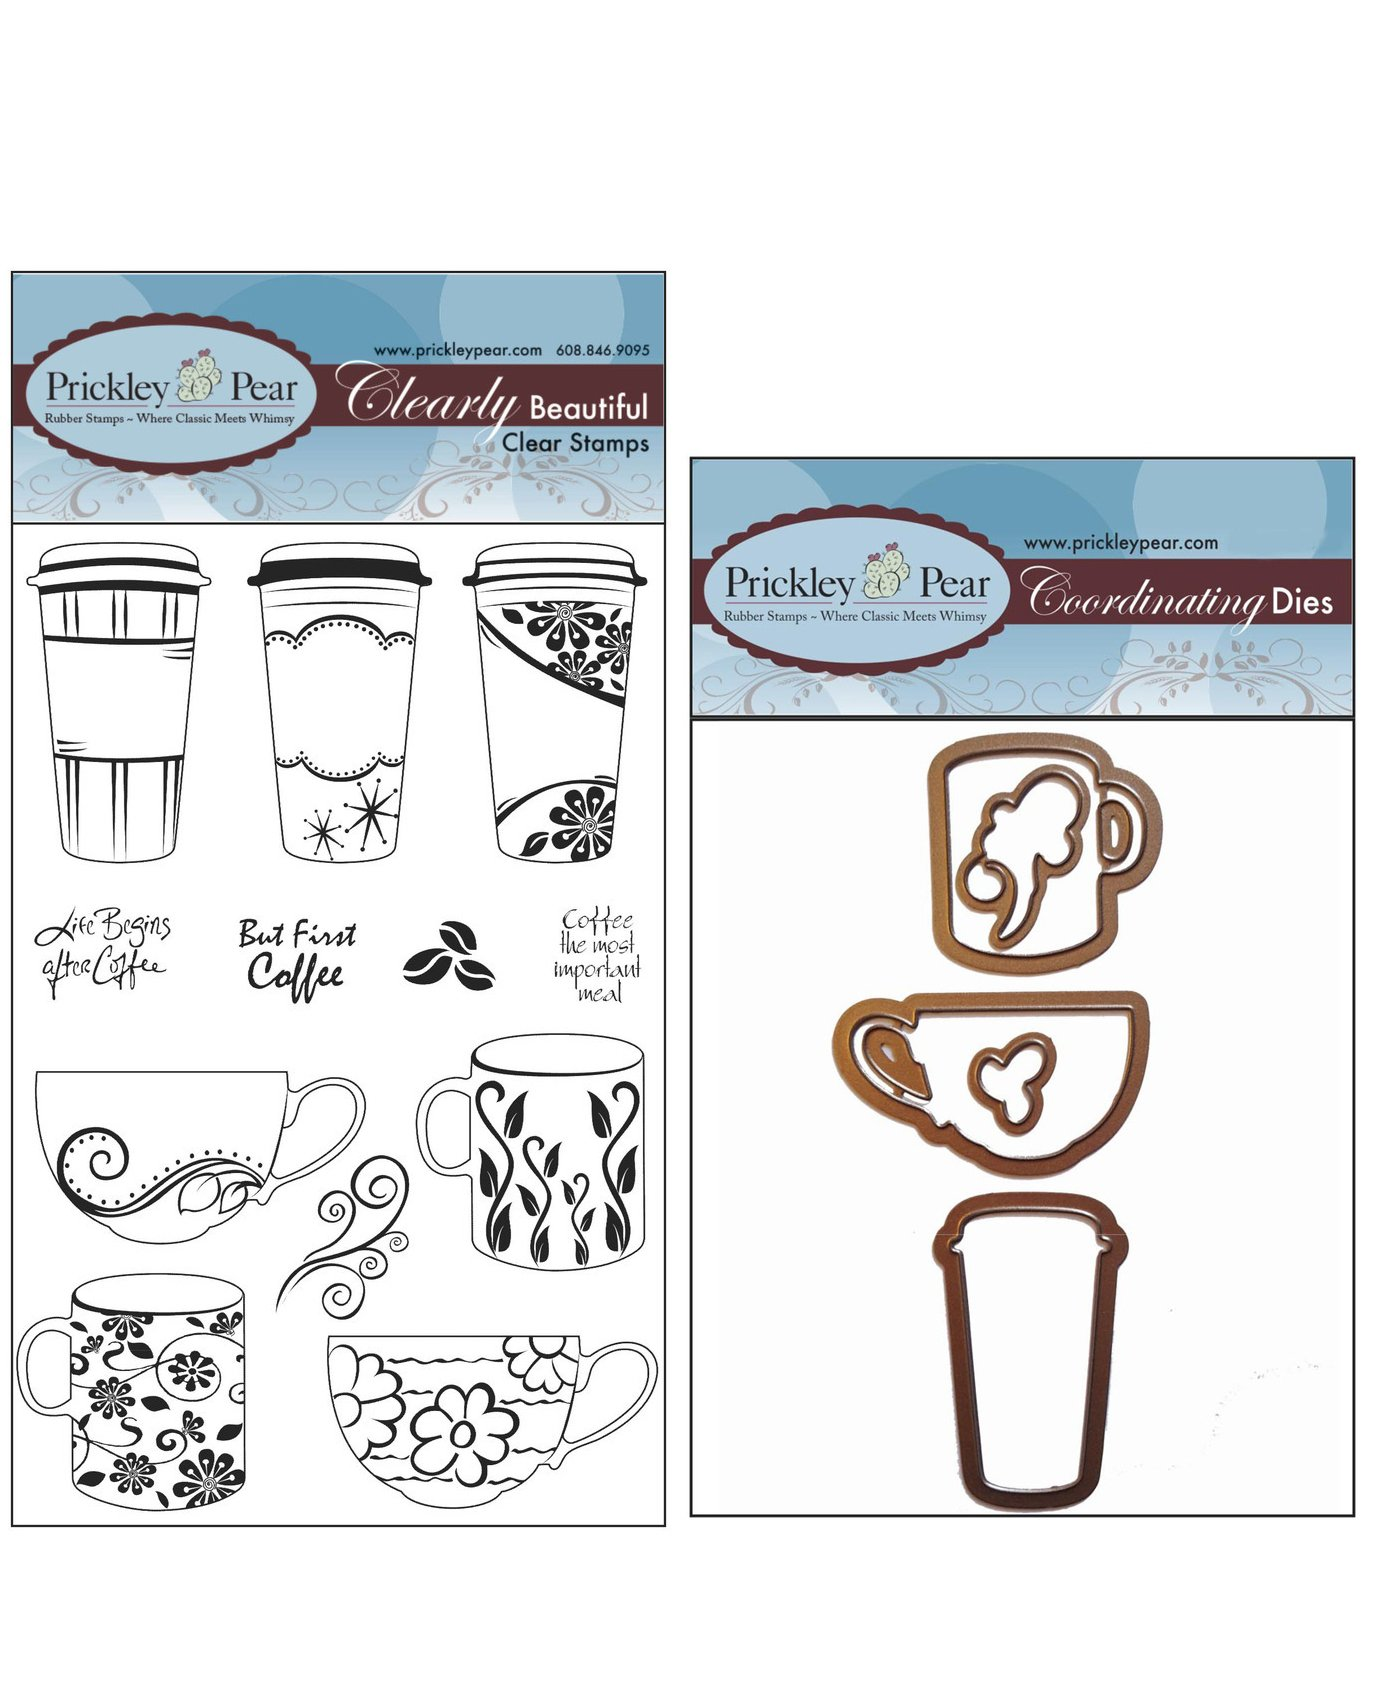 Prickley Pear Coffee Cup Clear Stamp and Die Set - CLR057 & PPRS-D057 - Bundle 2 Items